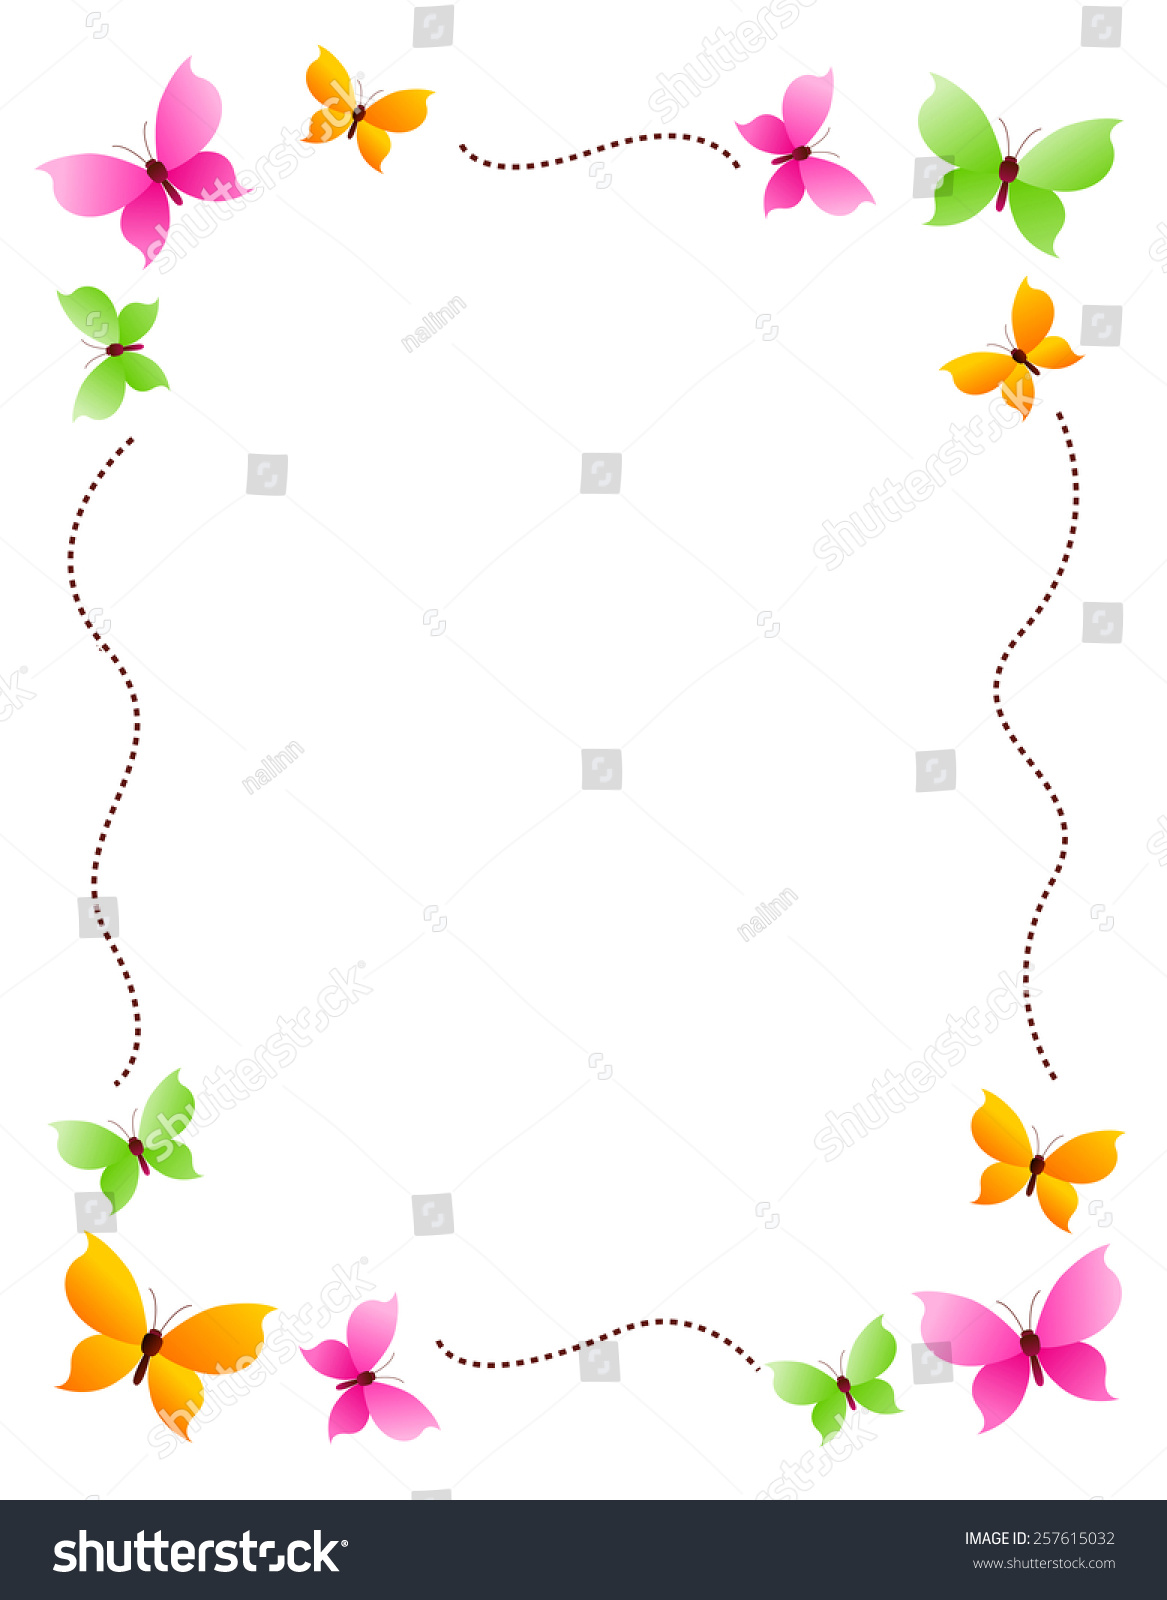 butterfly frame with colorful butterflies on four corners